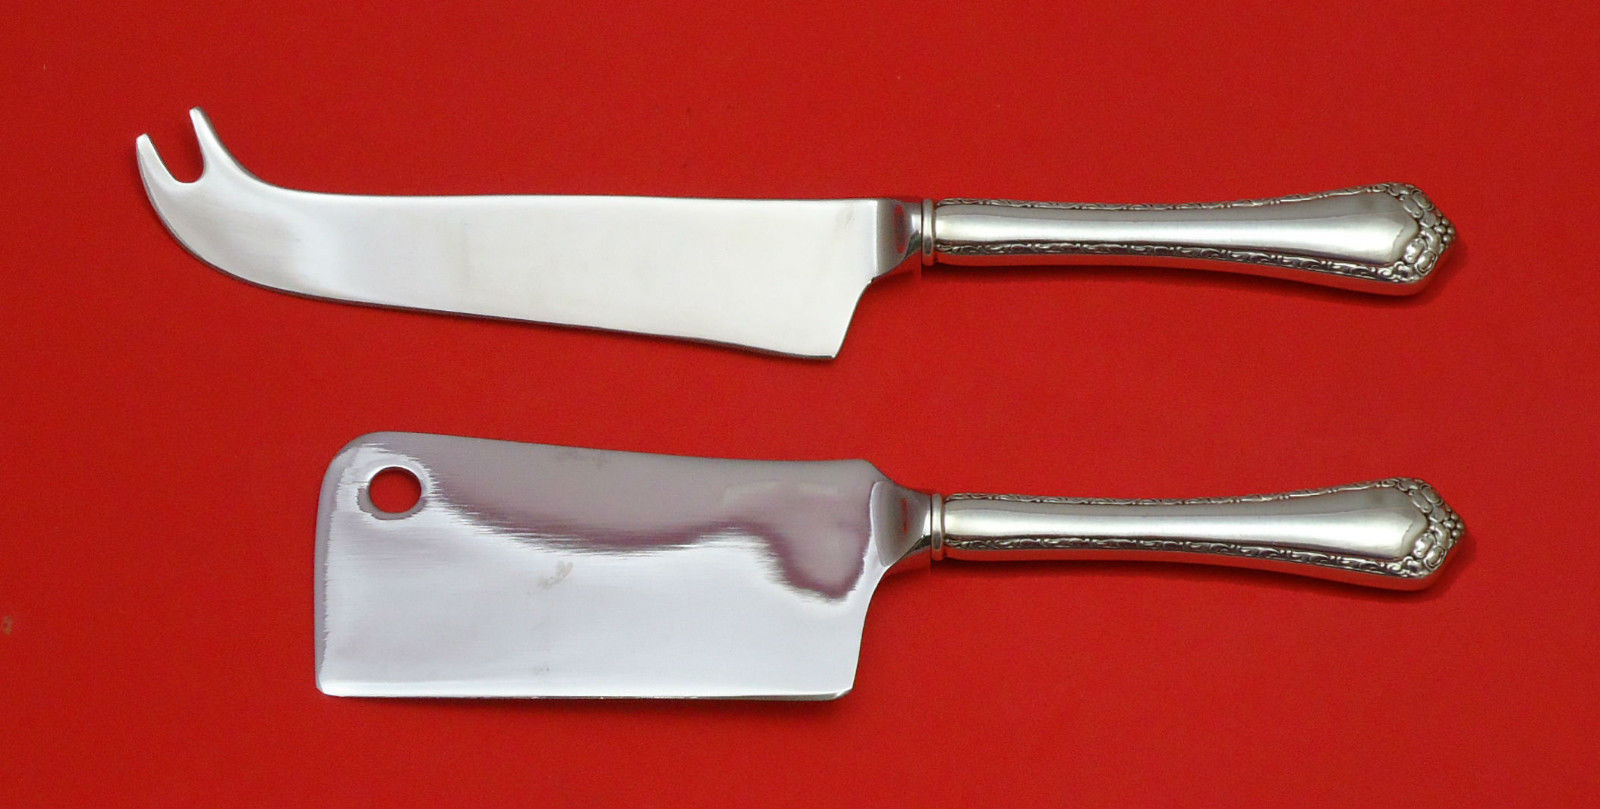 ROSEMARY BY EASTERLING STERLING SILVER CHEESE SERVER SERVING SET 2PC HHWS CUSTOM - $110.30